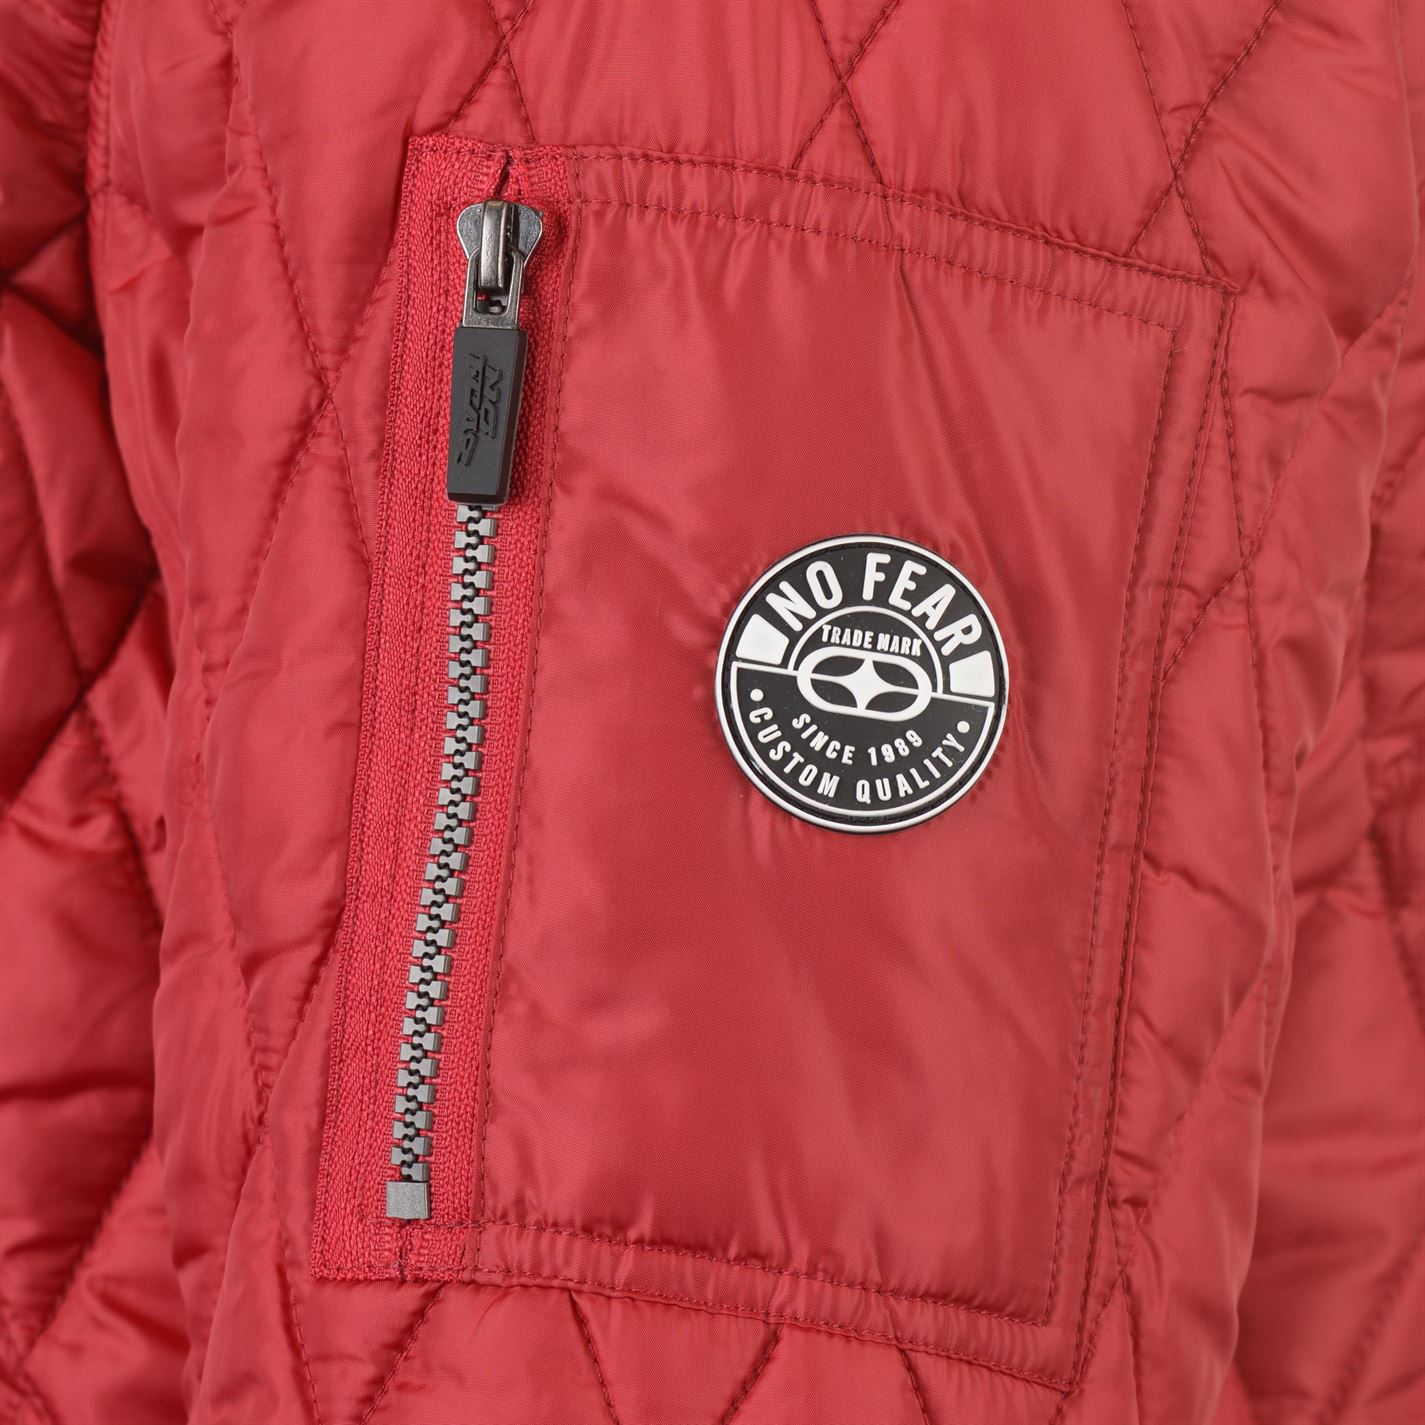 No-Fear-Quilted-Bomber-Jacket-Mens-Gents-Coat-Top-Full-Length-Sleeve-Zip-Zipped thumbnail 11